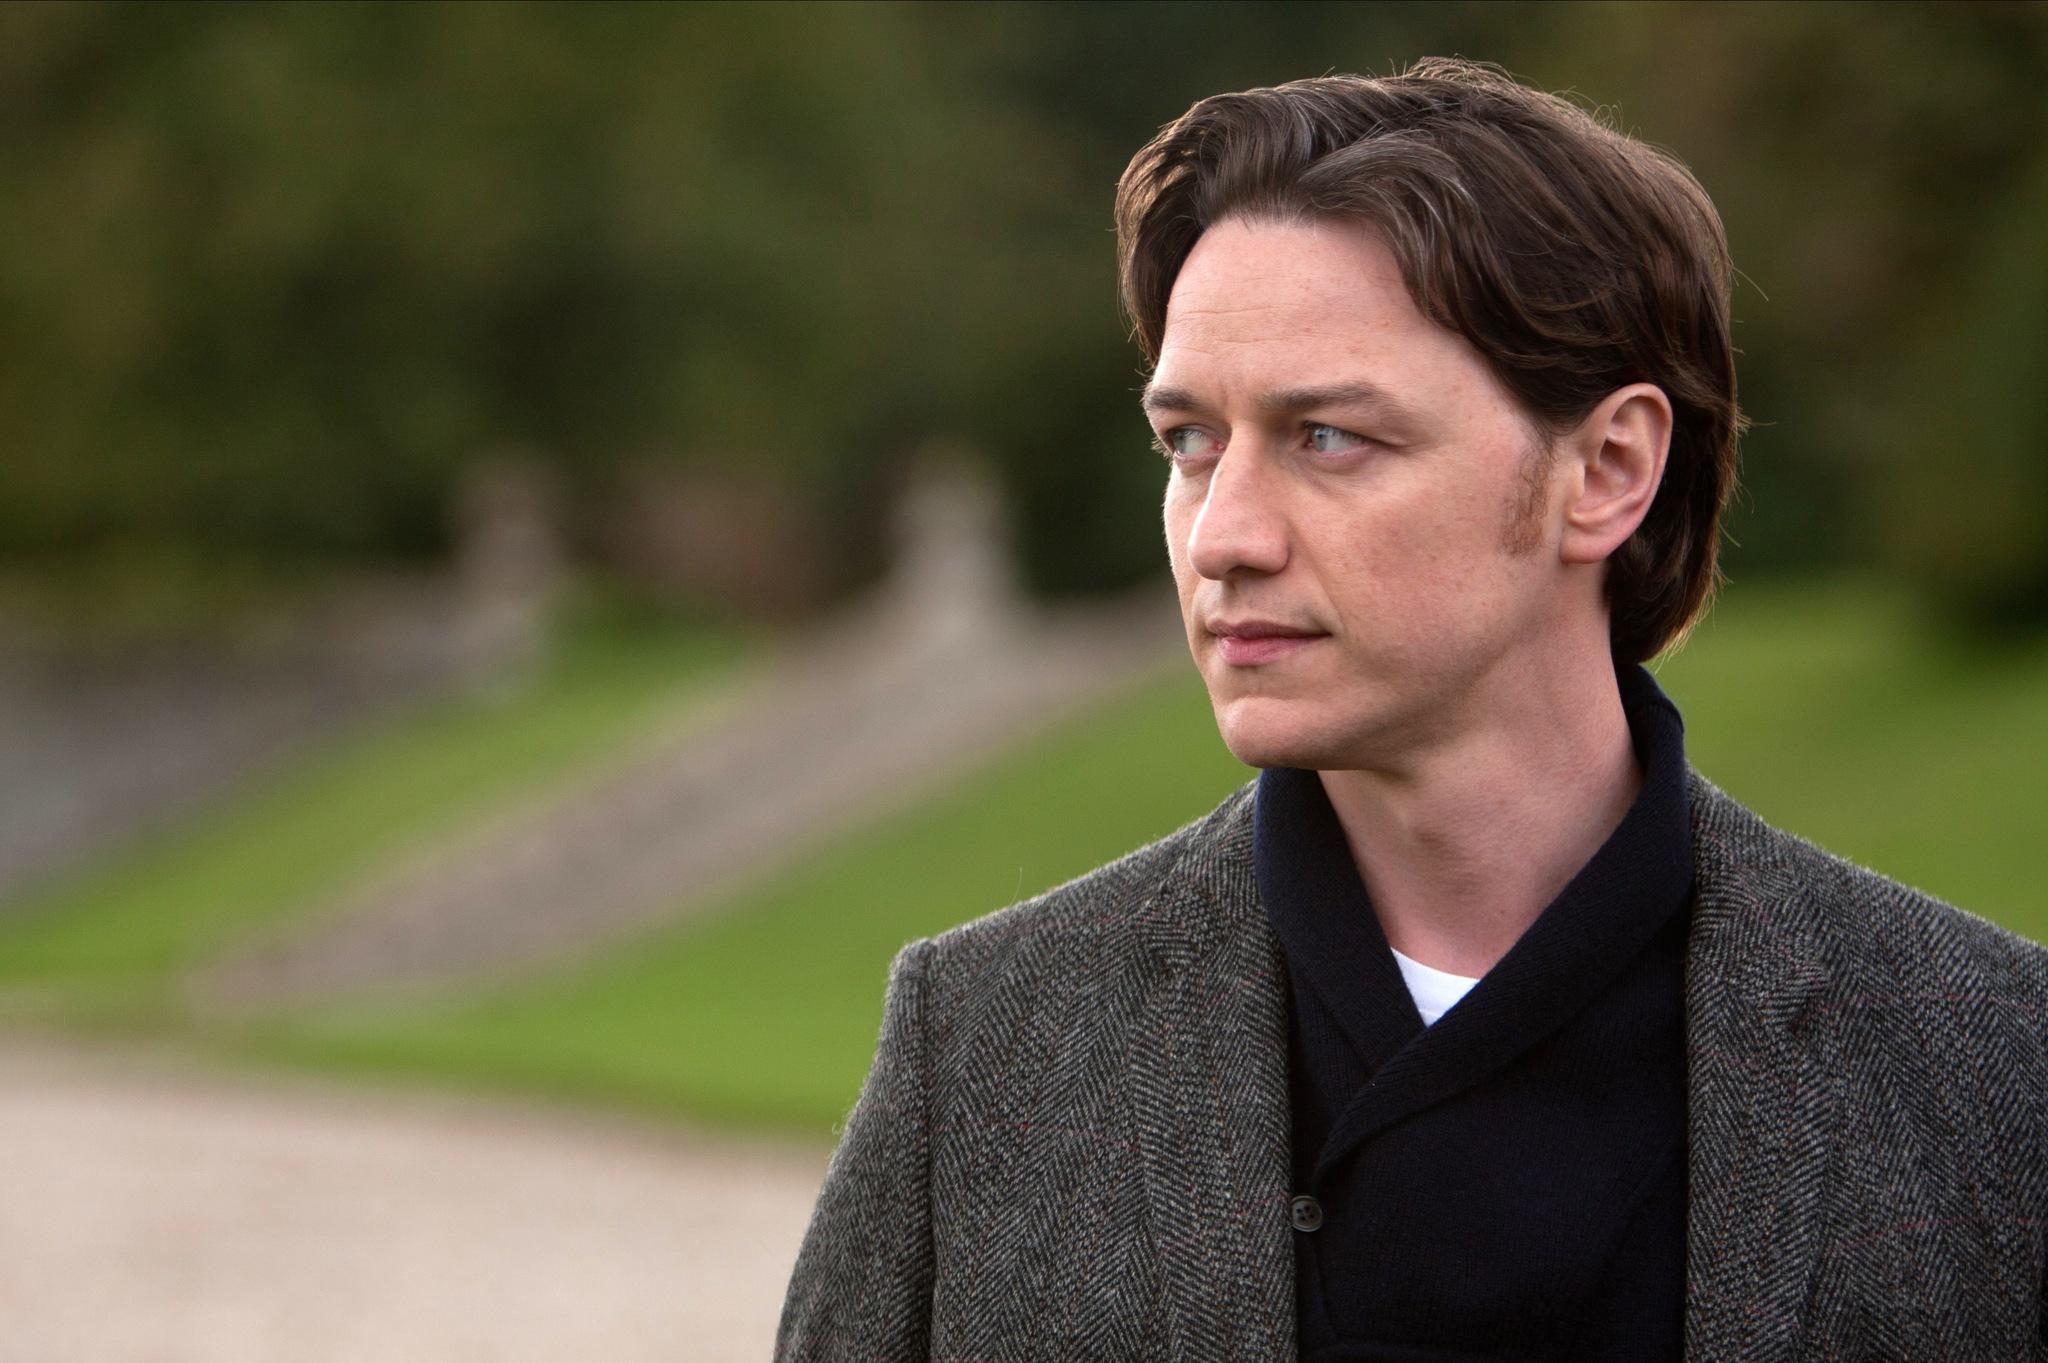 James McAvoy Goes Bald For 'X-Men: Apocalypse' | The Source